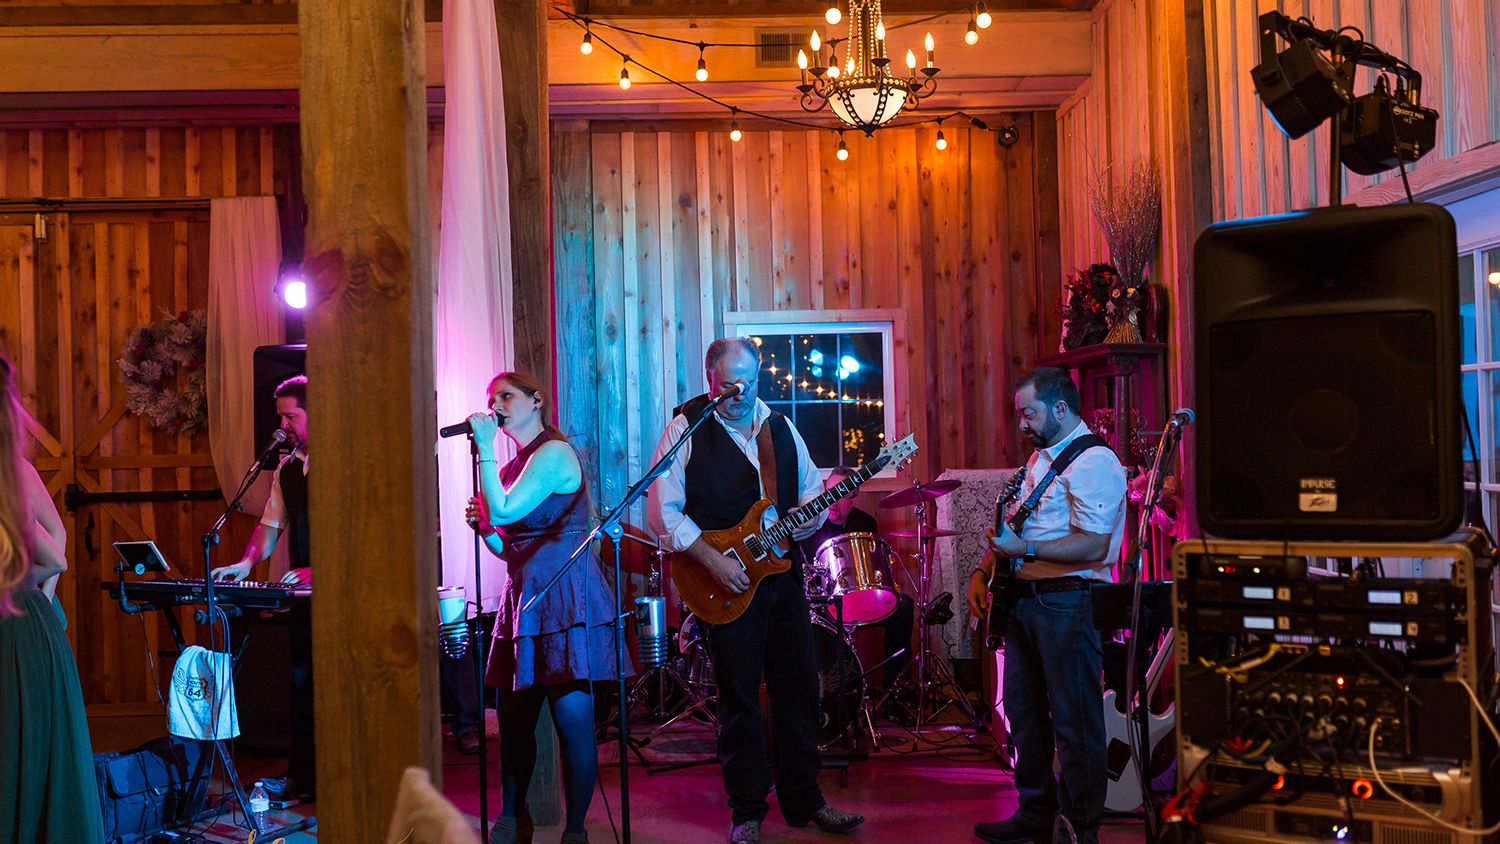 Live Band playing during Reception in the Barn